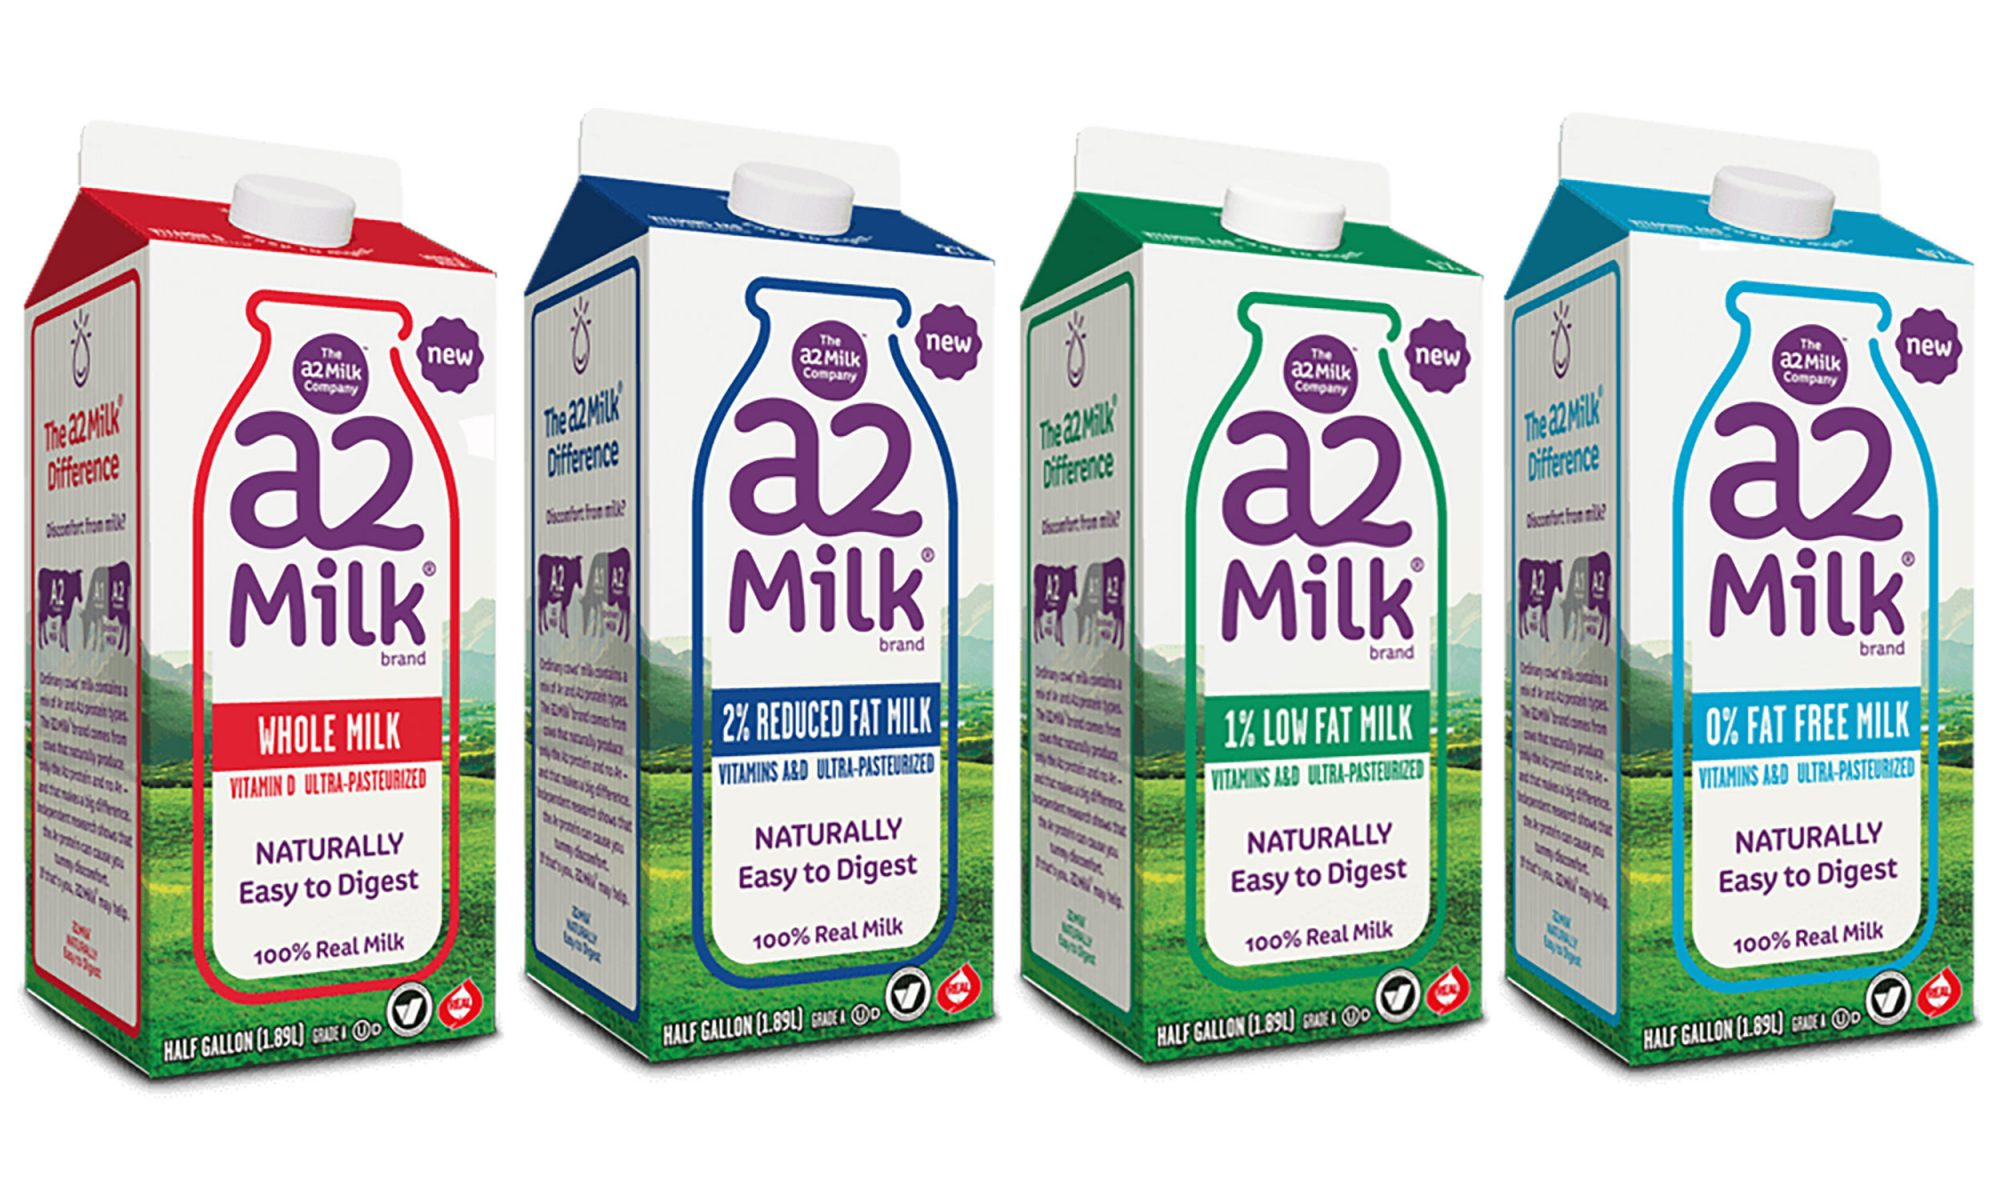 EC: Something Called A2 Milk Promises to Be Easier to Digest Than Regular Milk